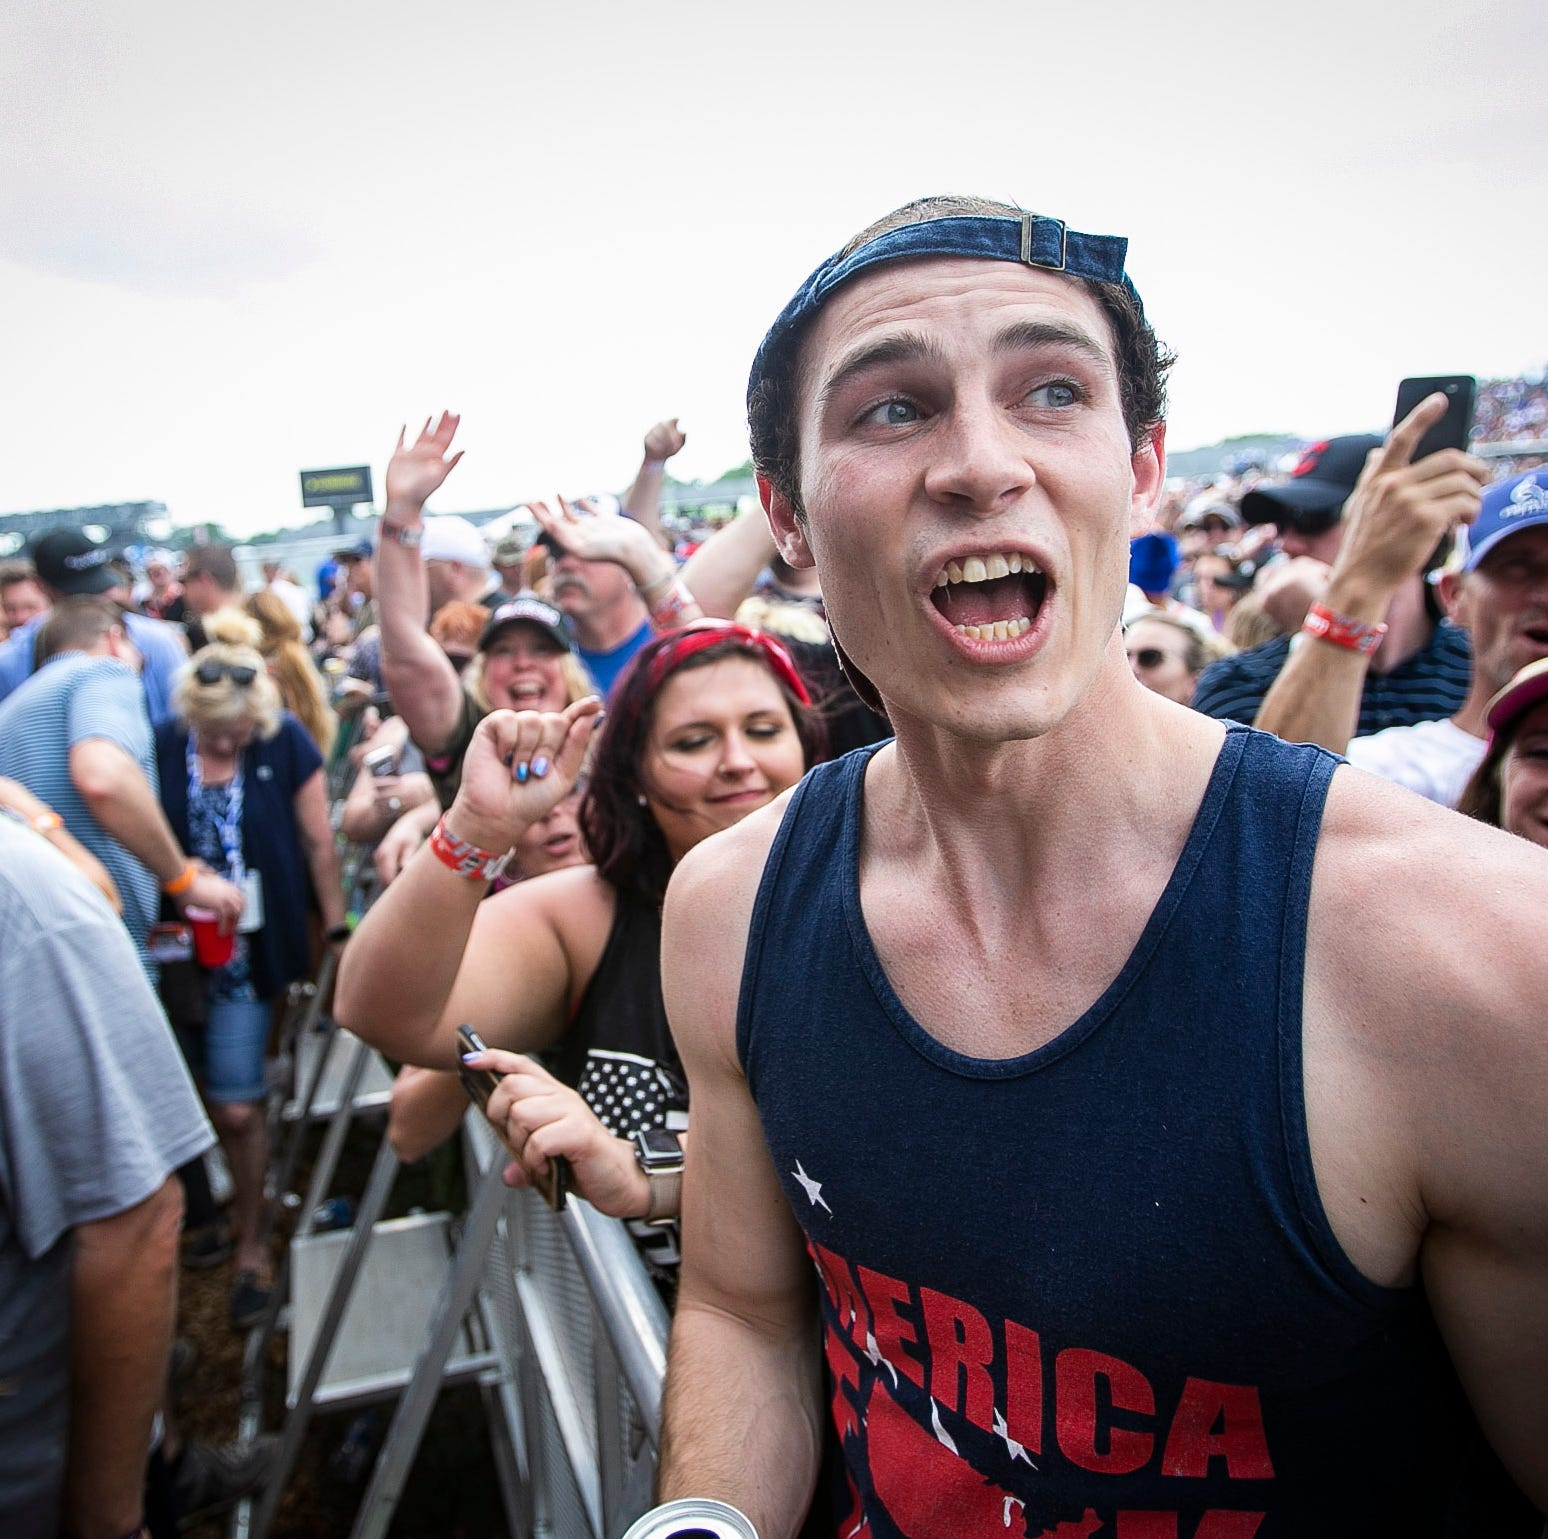 Indy 500 live updates: Traffic, weather and the scene at IMS